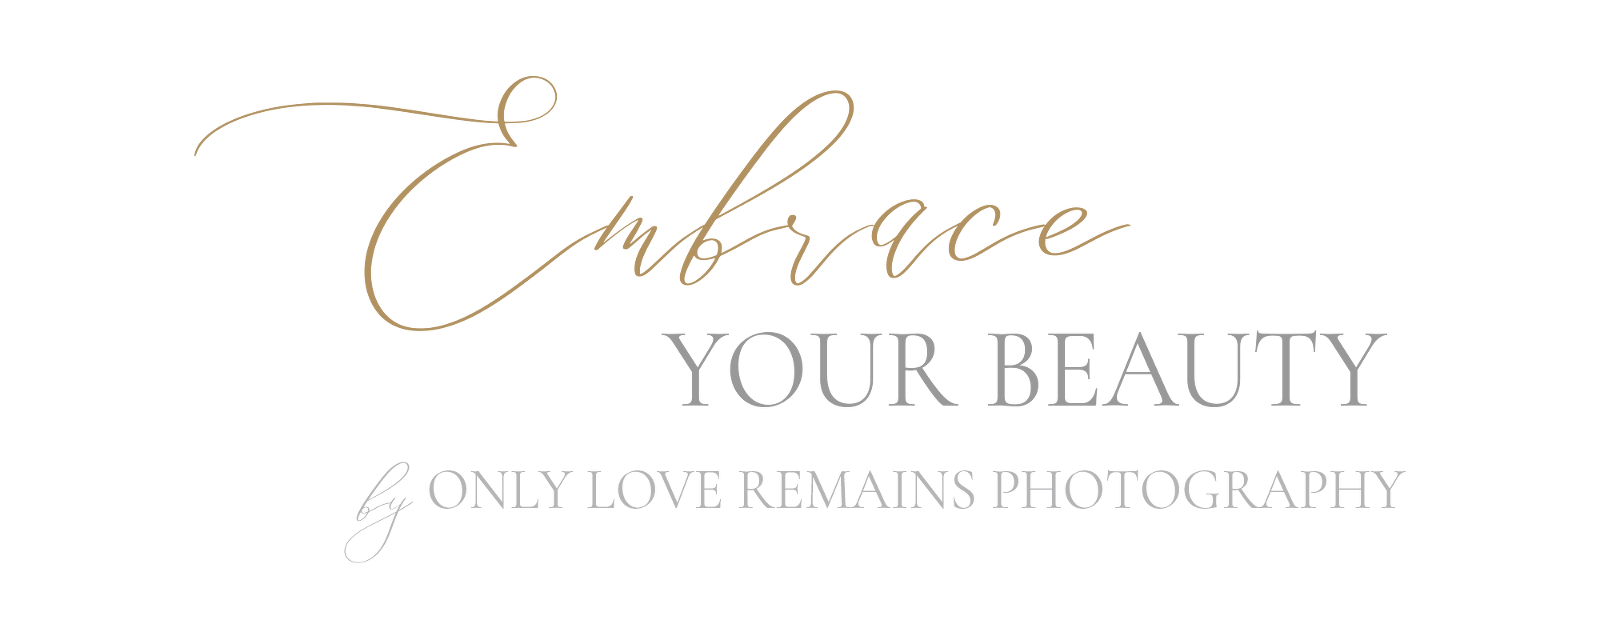 logo of embrace your beauty